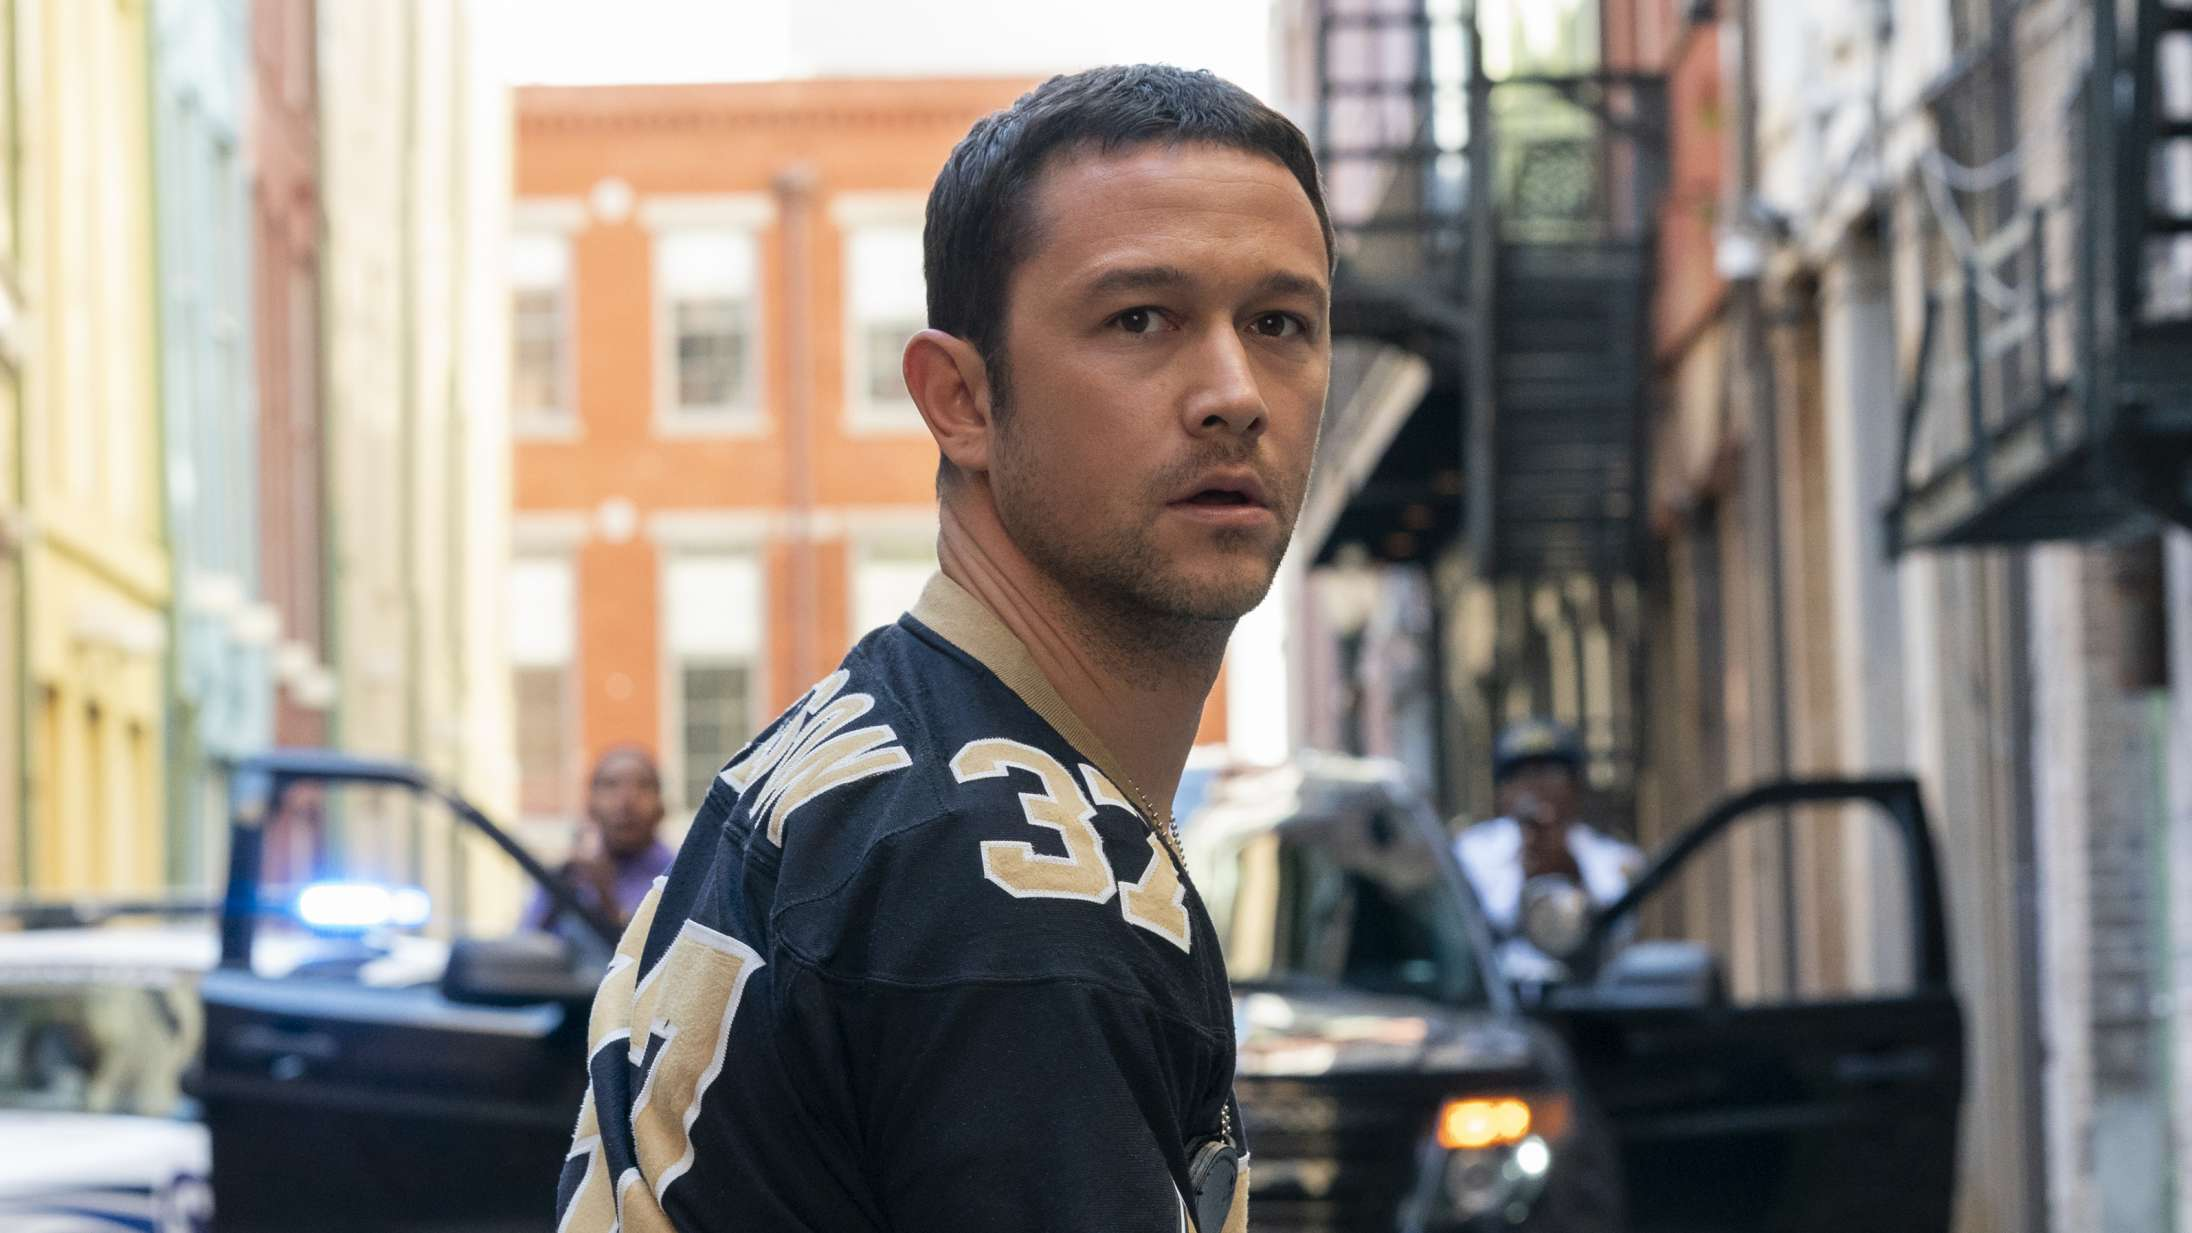 'Project Power': Joseph Gordon-Levitt og Jamie Foxx får superkræfter i stilforvirret Netflix-film